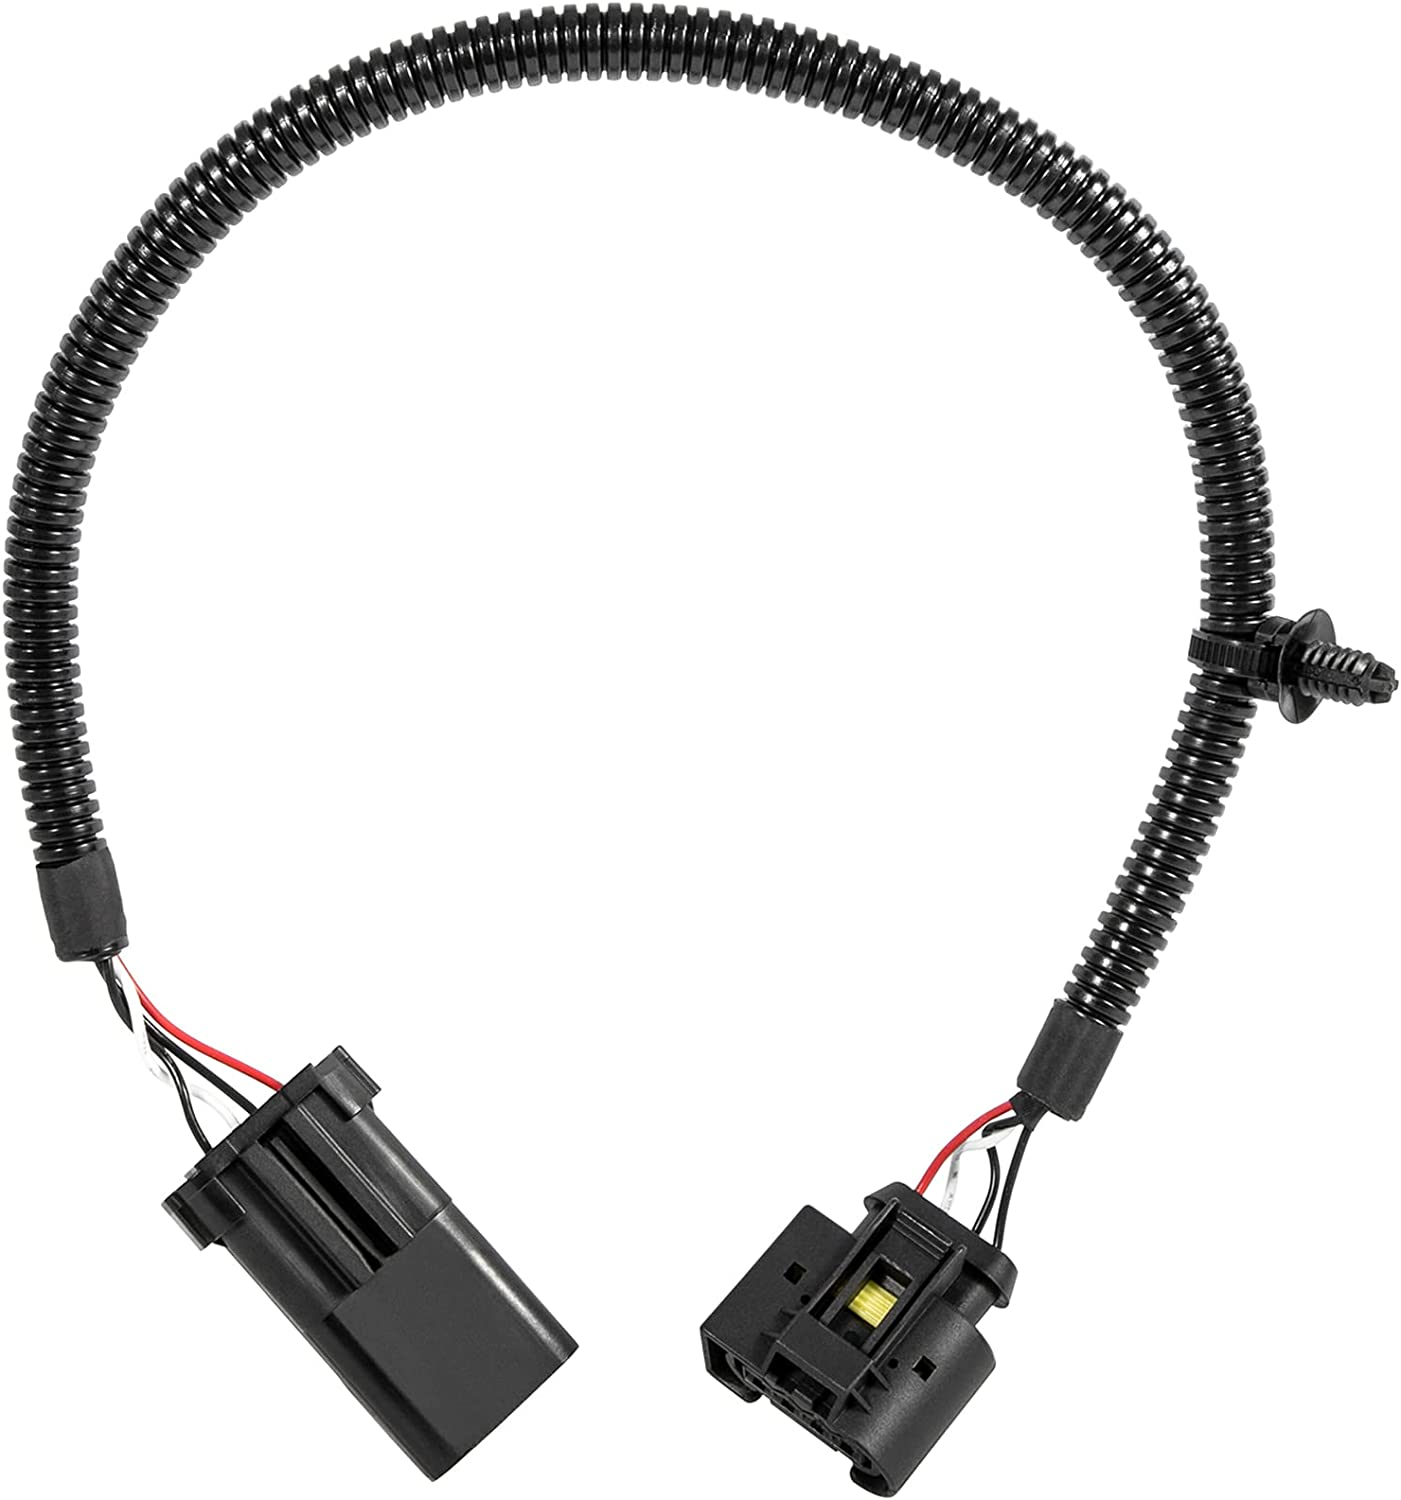 Turbocharger Actuator Las Vegas Mall Adapter Harness Fits for Ram 6.7 ISB Truck Financial sales sale